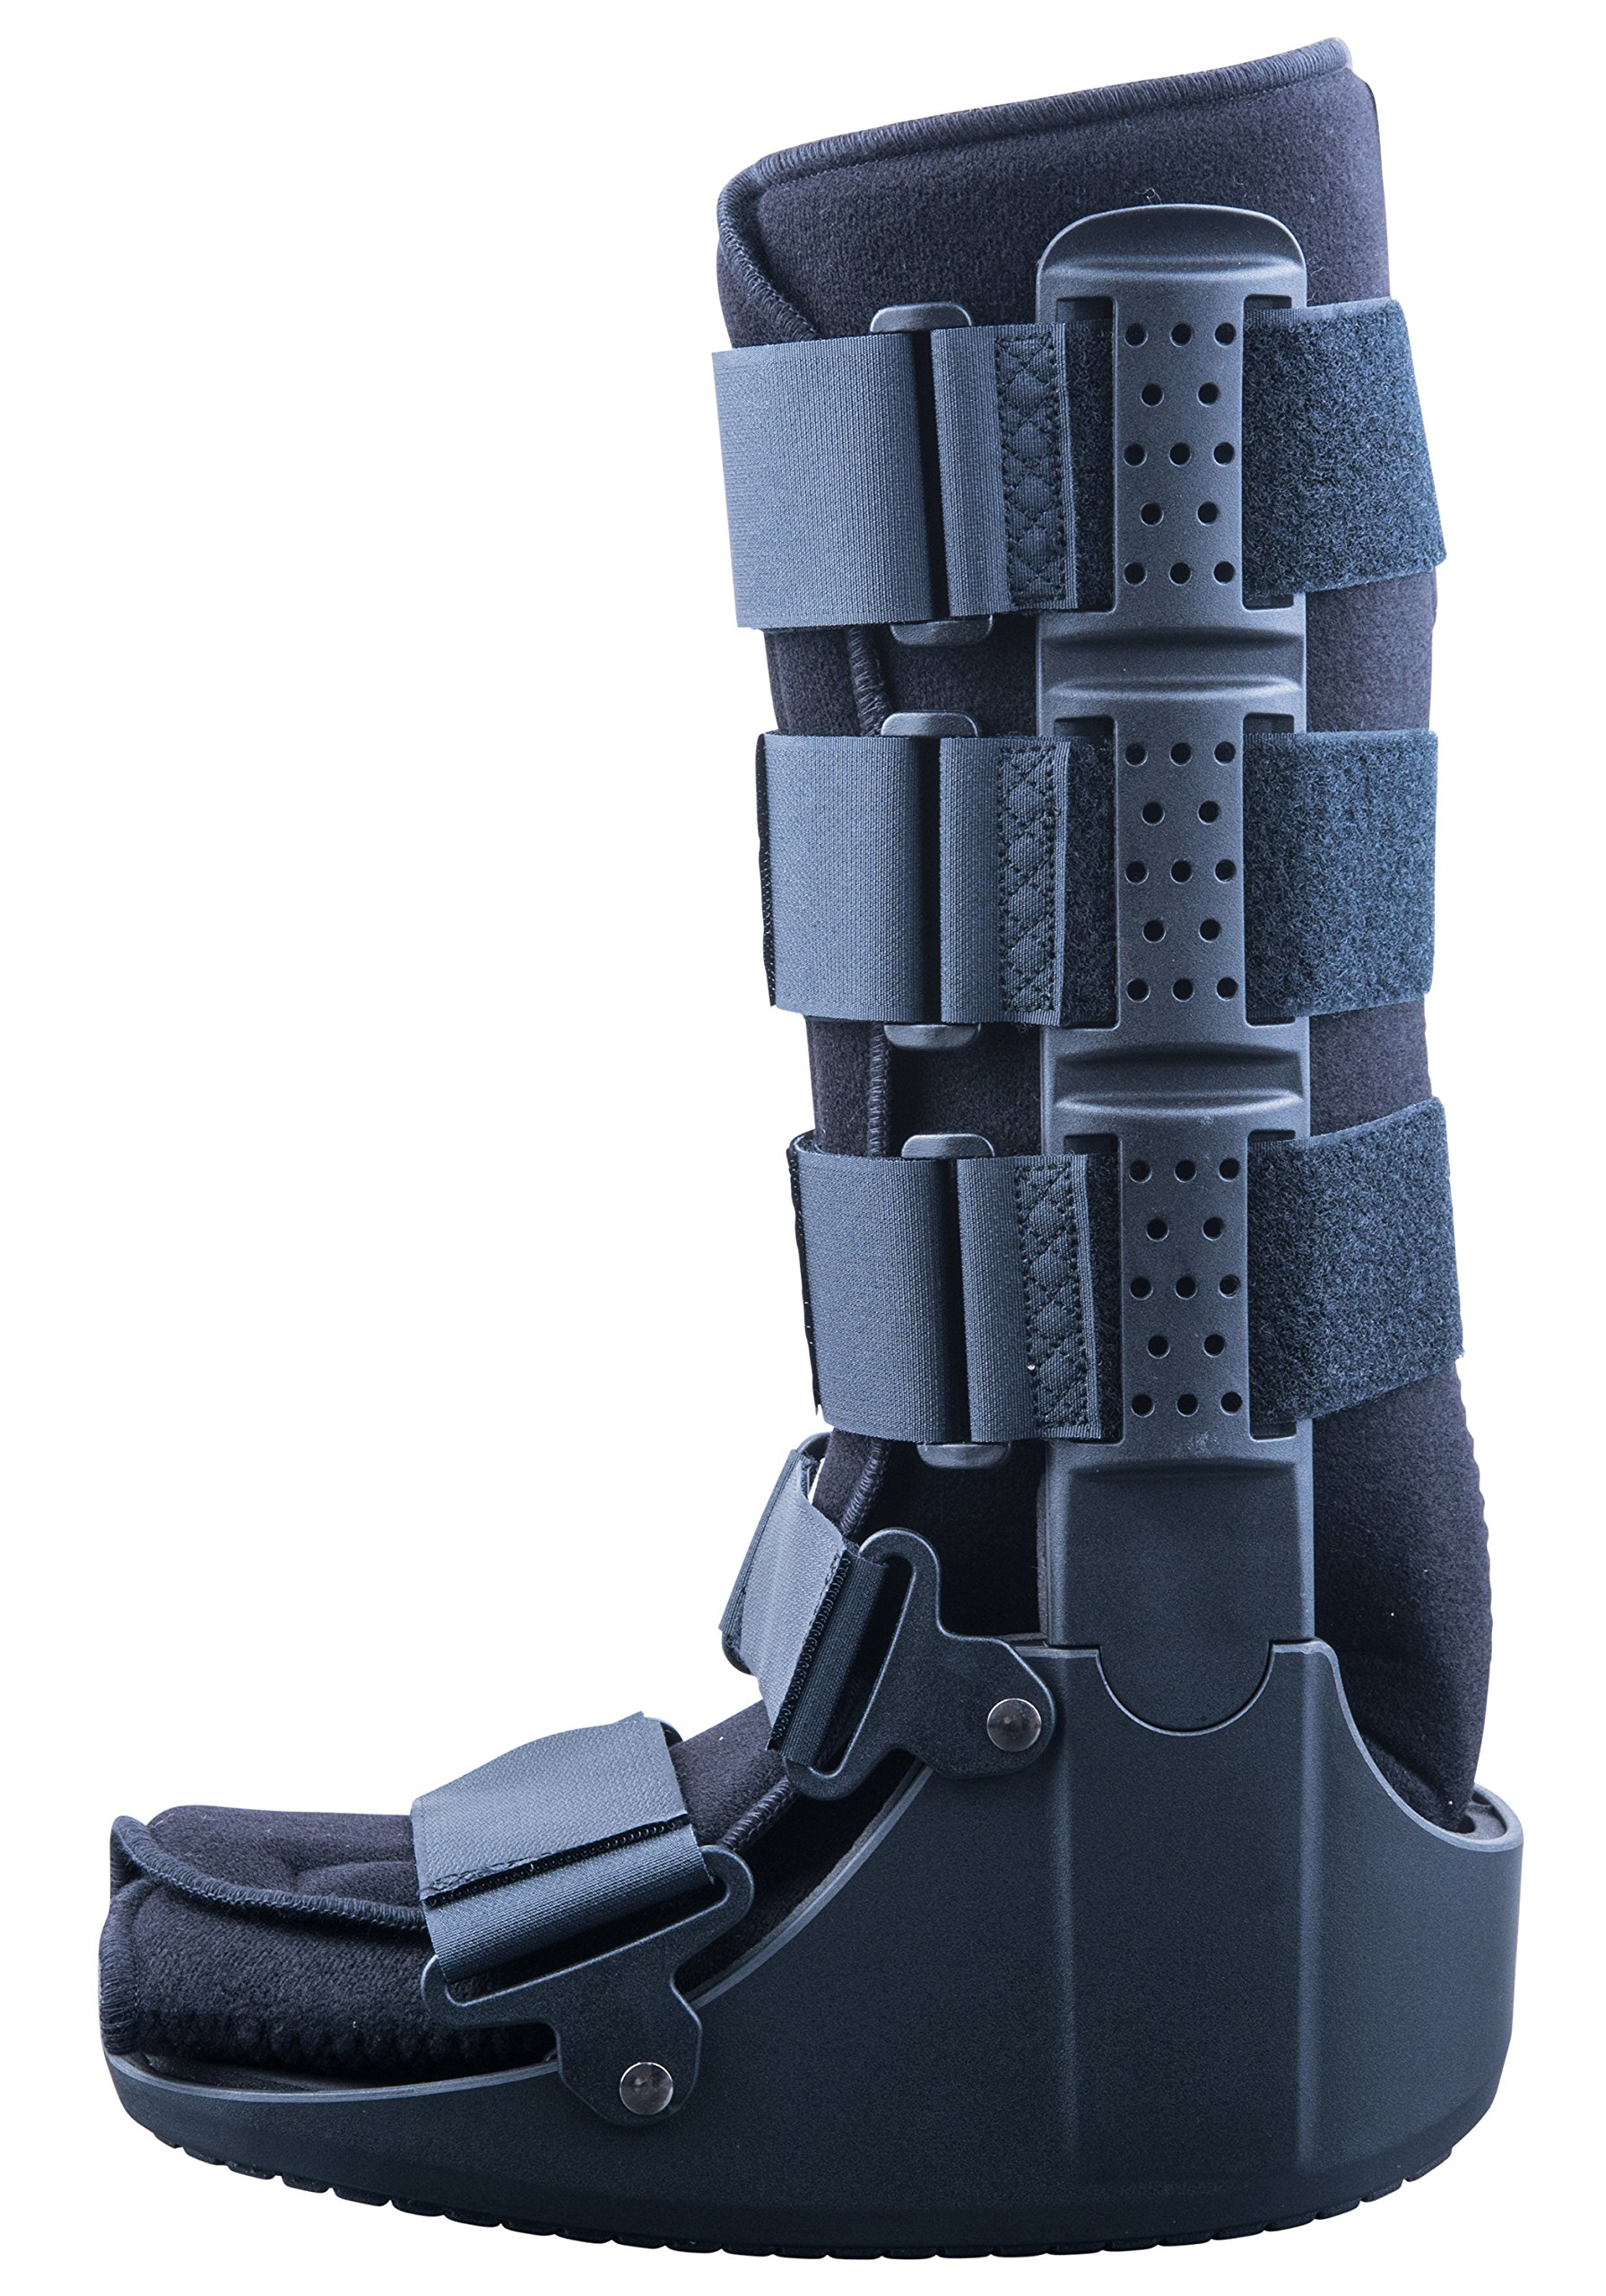 Mars Wellness Premium Polymer Tall Cam Walker Fracture Ankle/Foot Stabilizer Boot - M by MARS WELLNESS